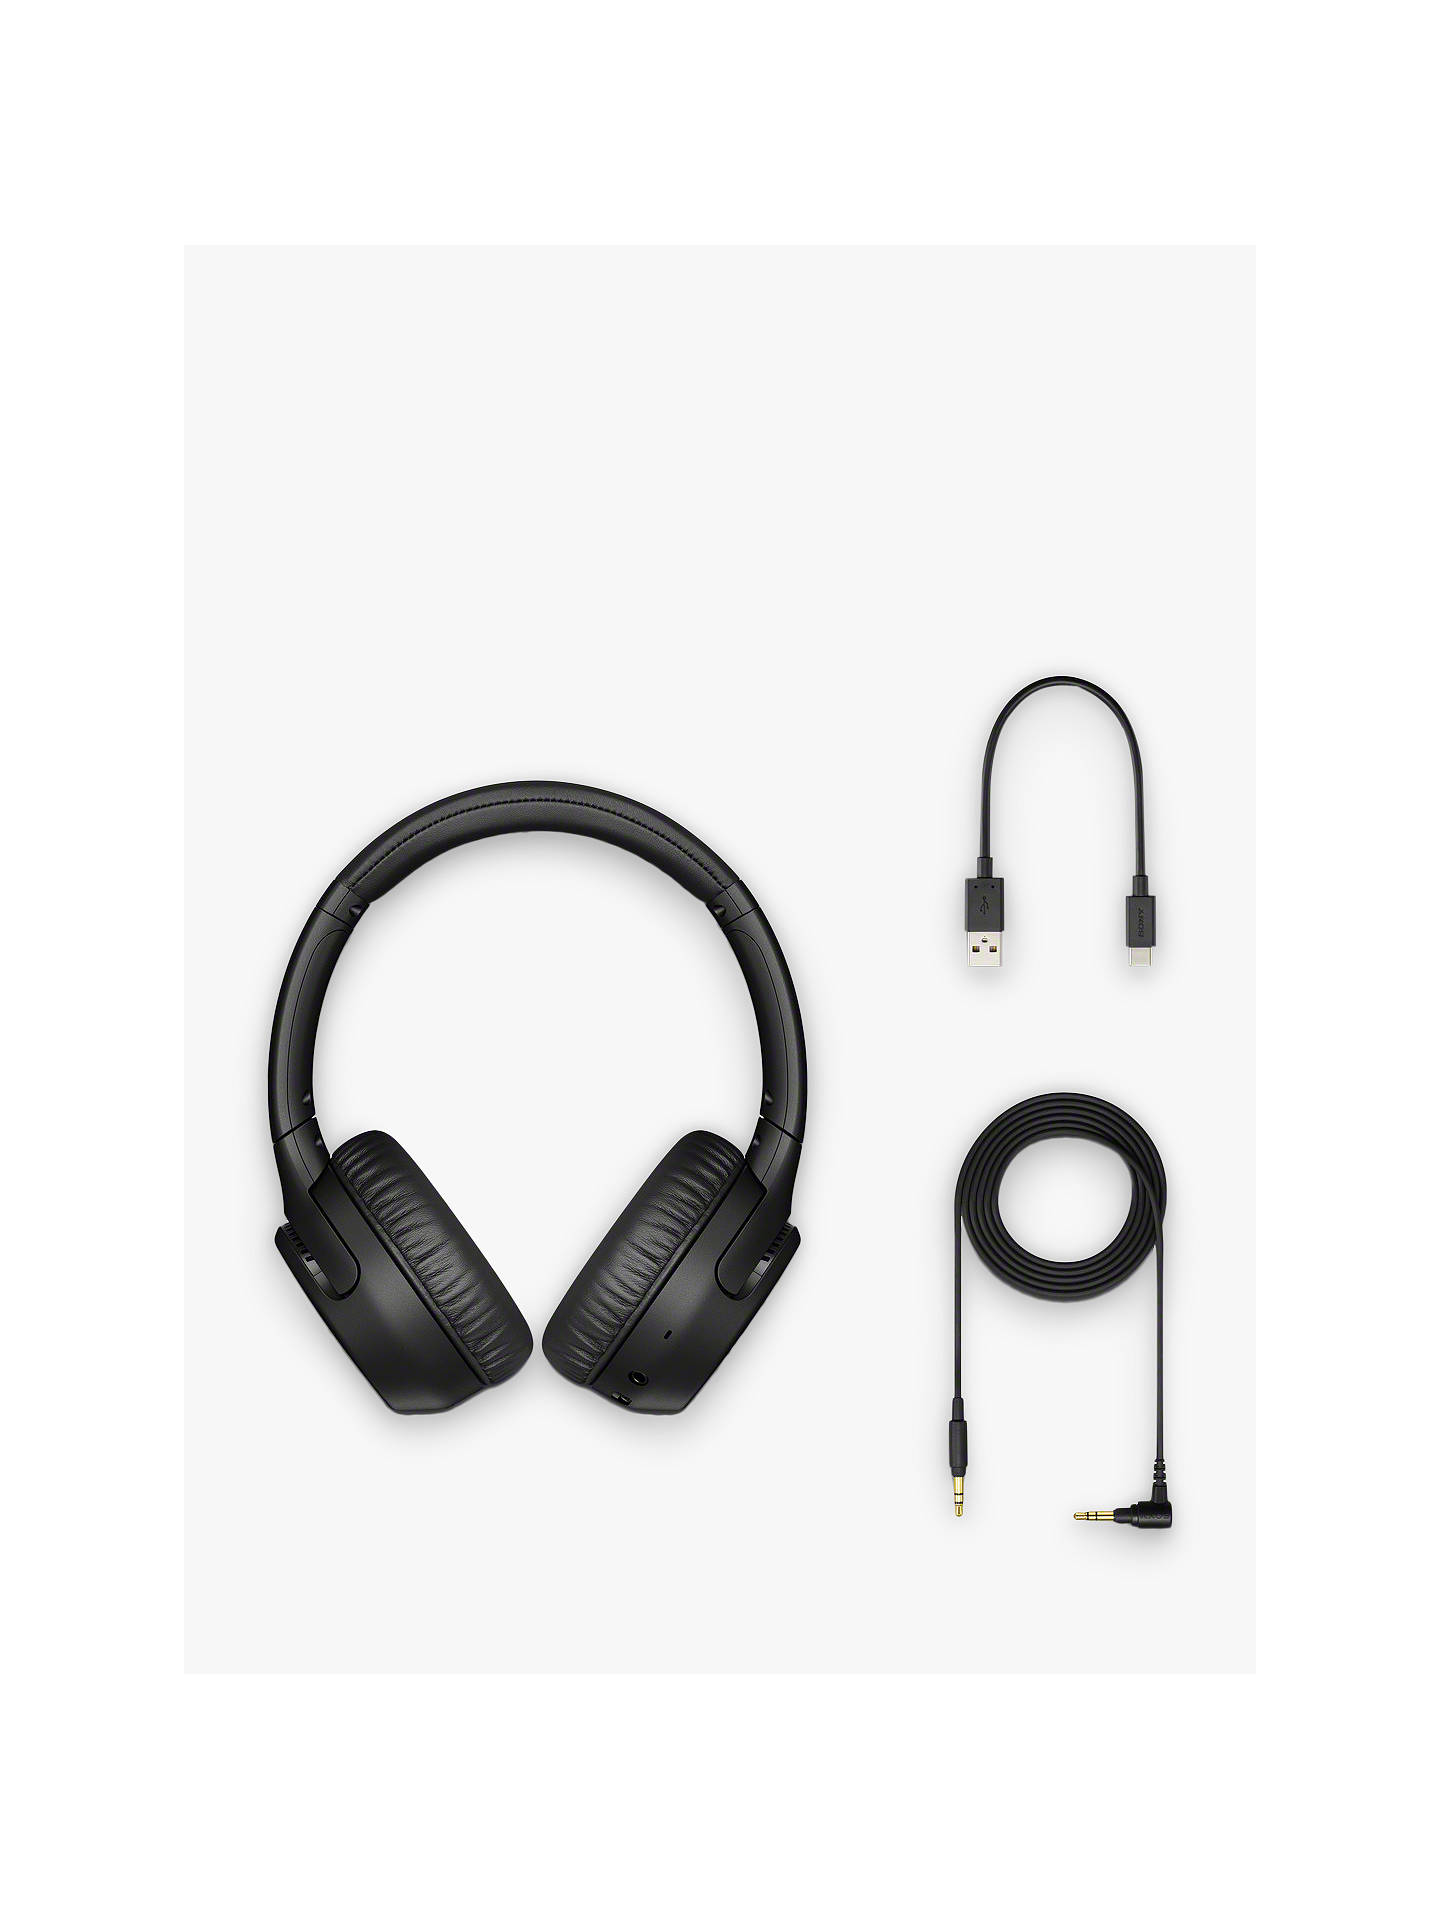 Buy Sony WH-XB700 Extra Bass Bluetooth NFC Wireless On-Ear Headphones with Mic/Remote, Black Online at johnlewis.com